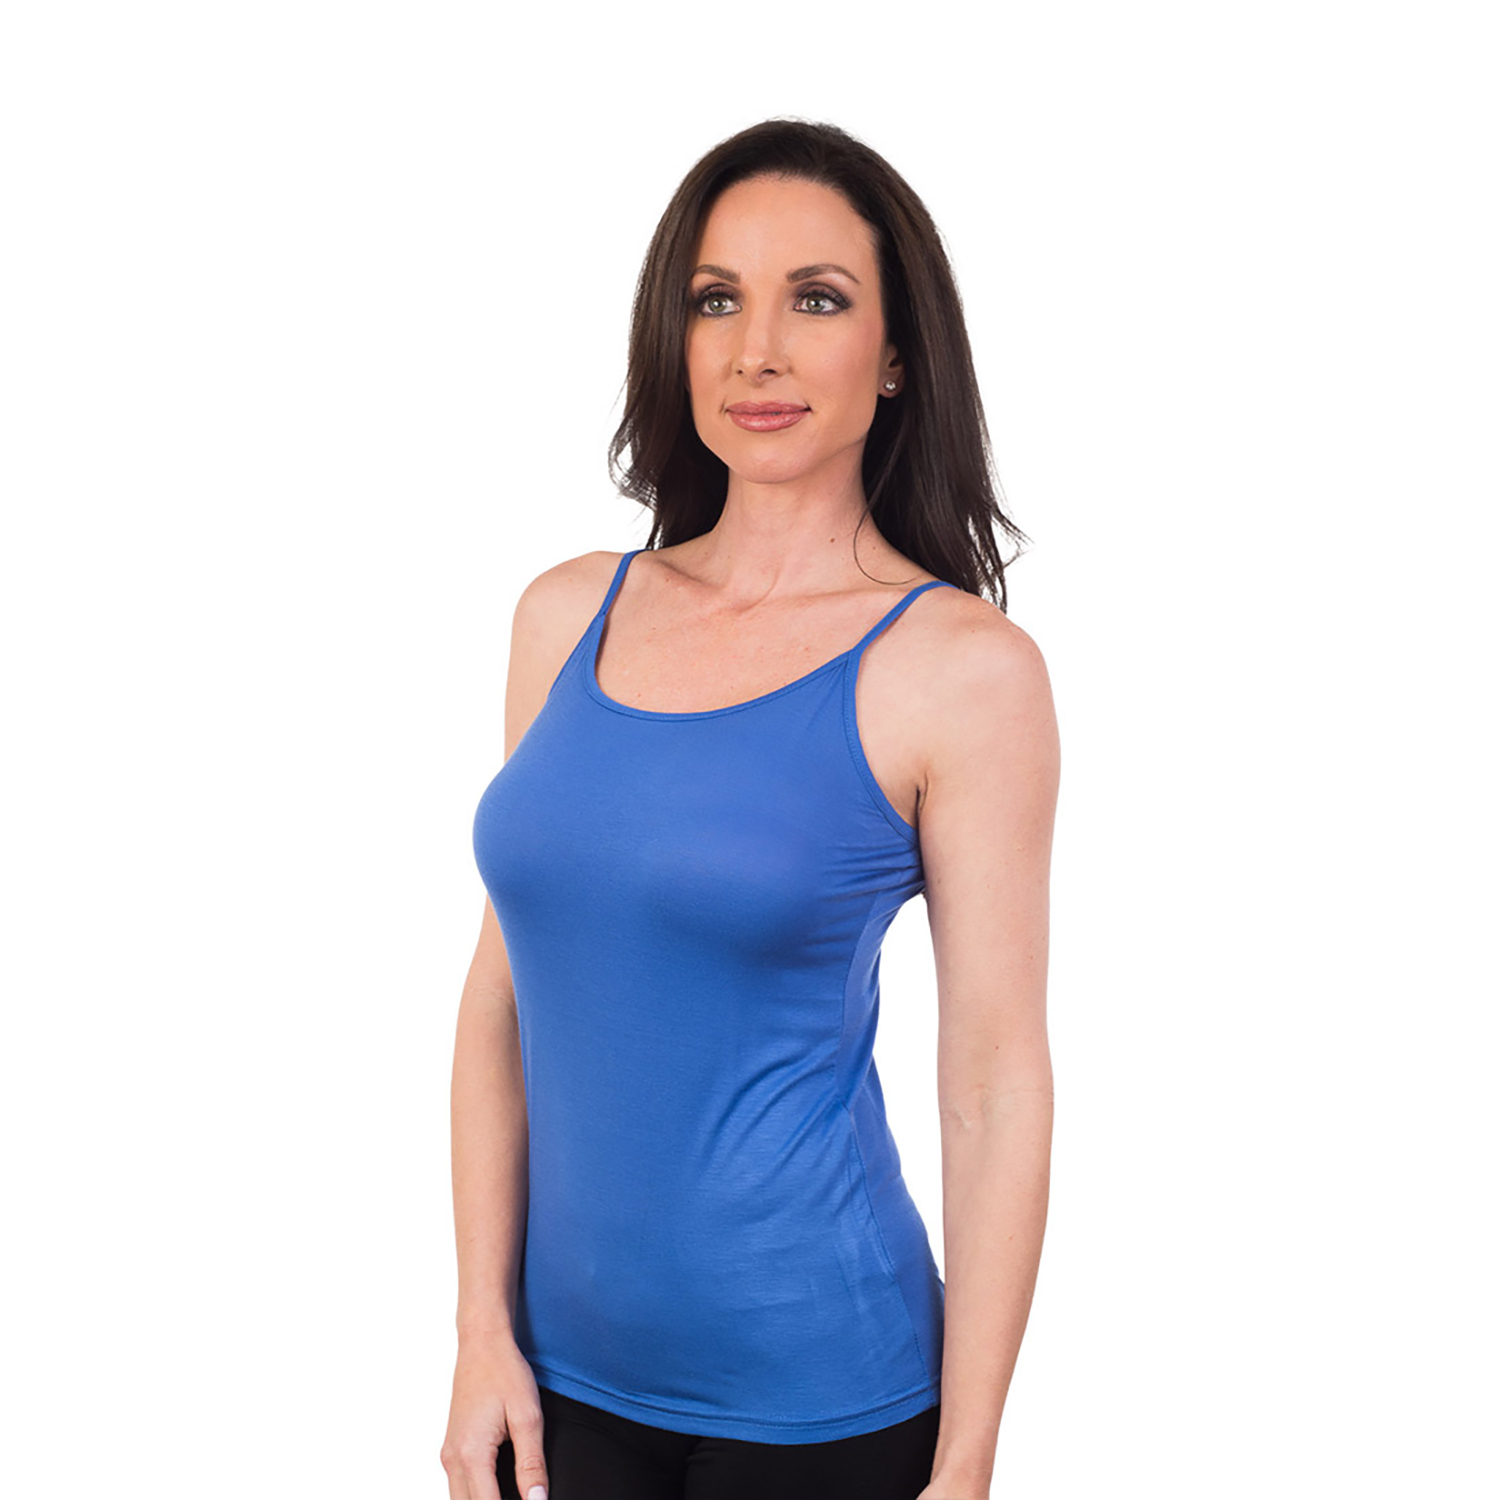 Women's Agiato Basic Camisole Blue XXLarge